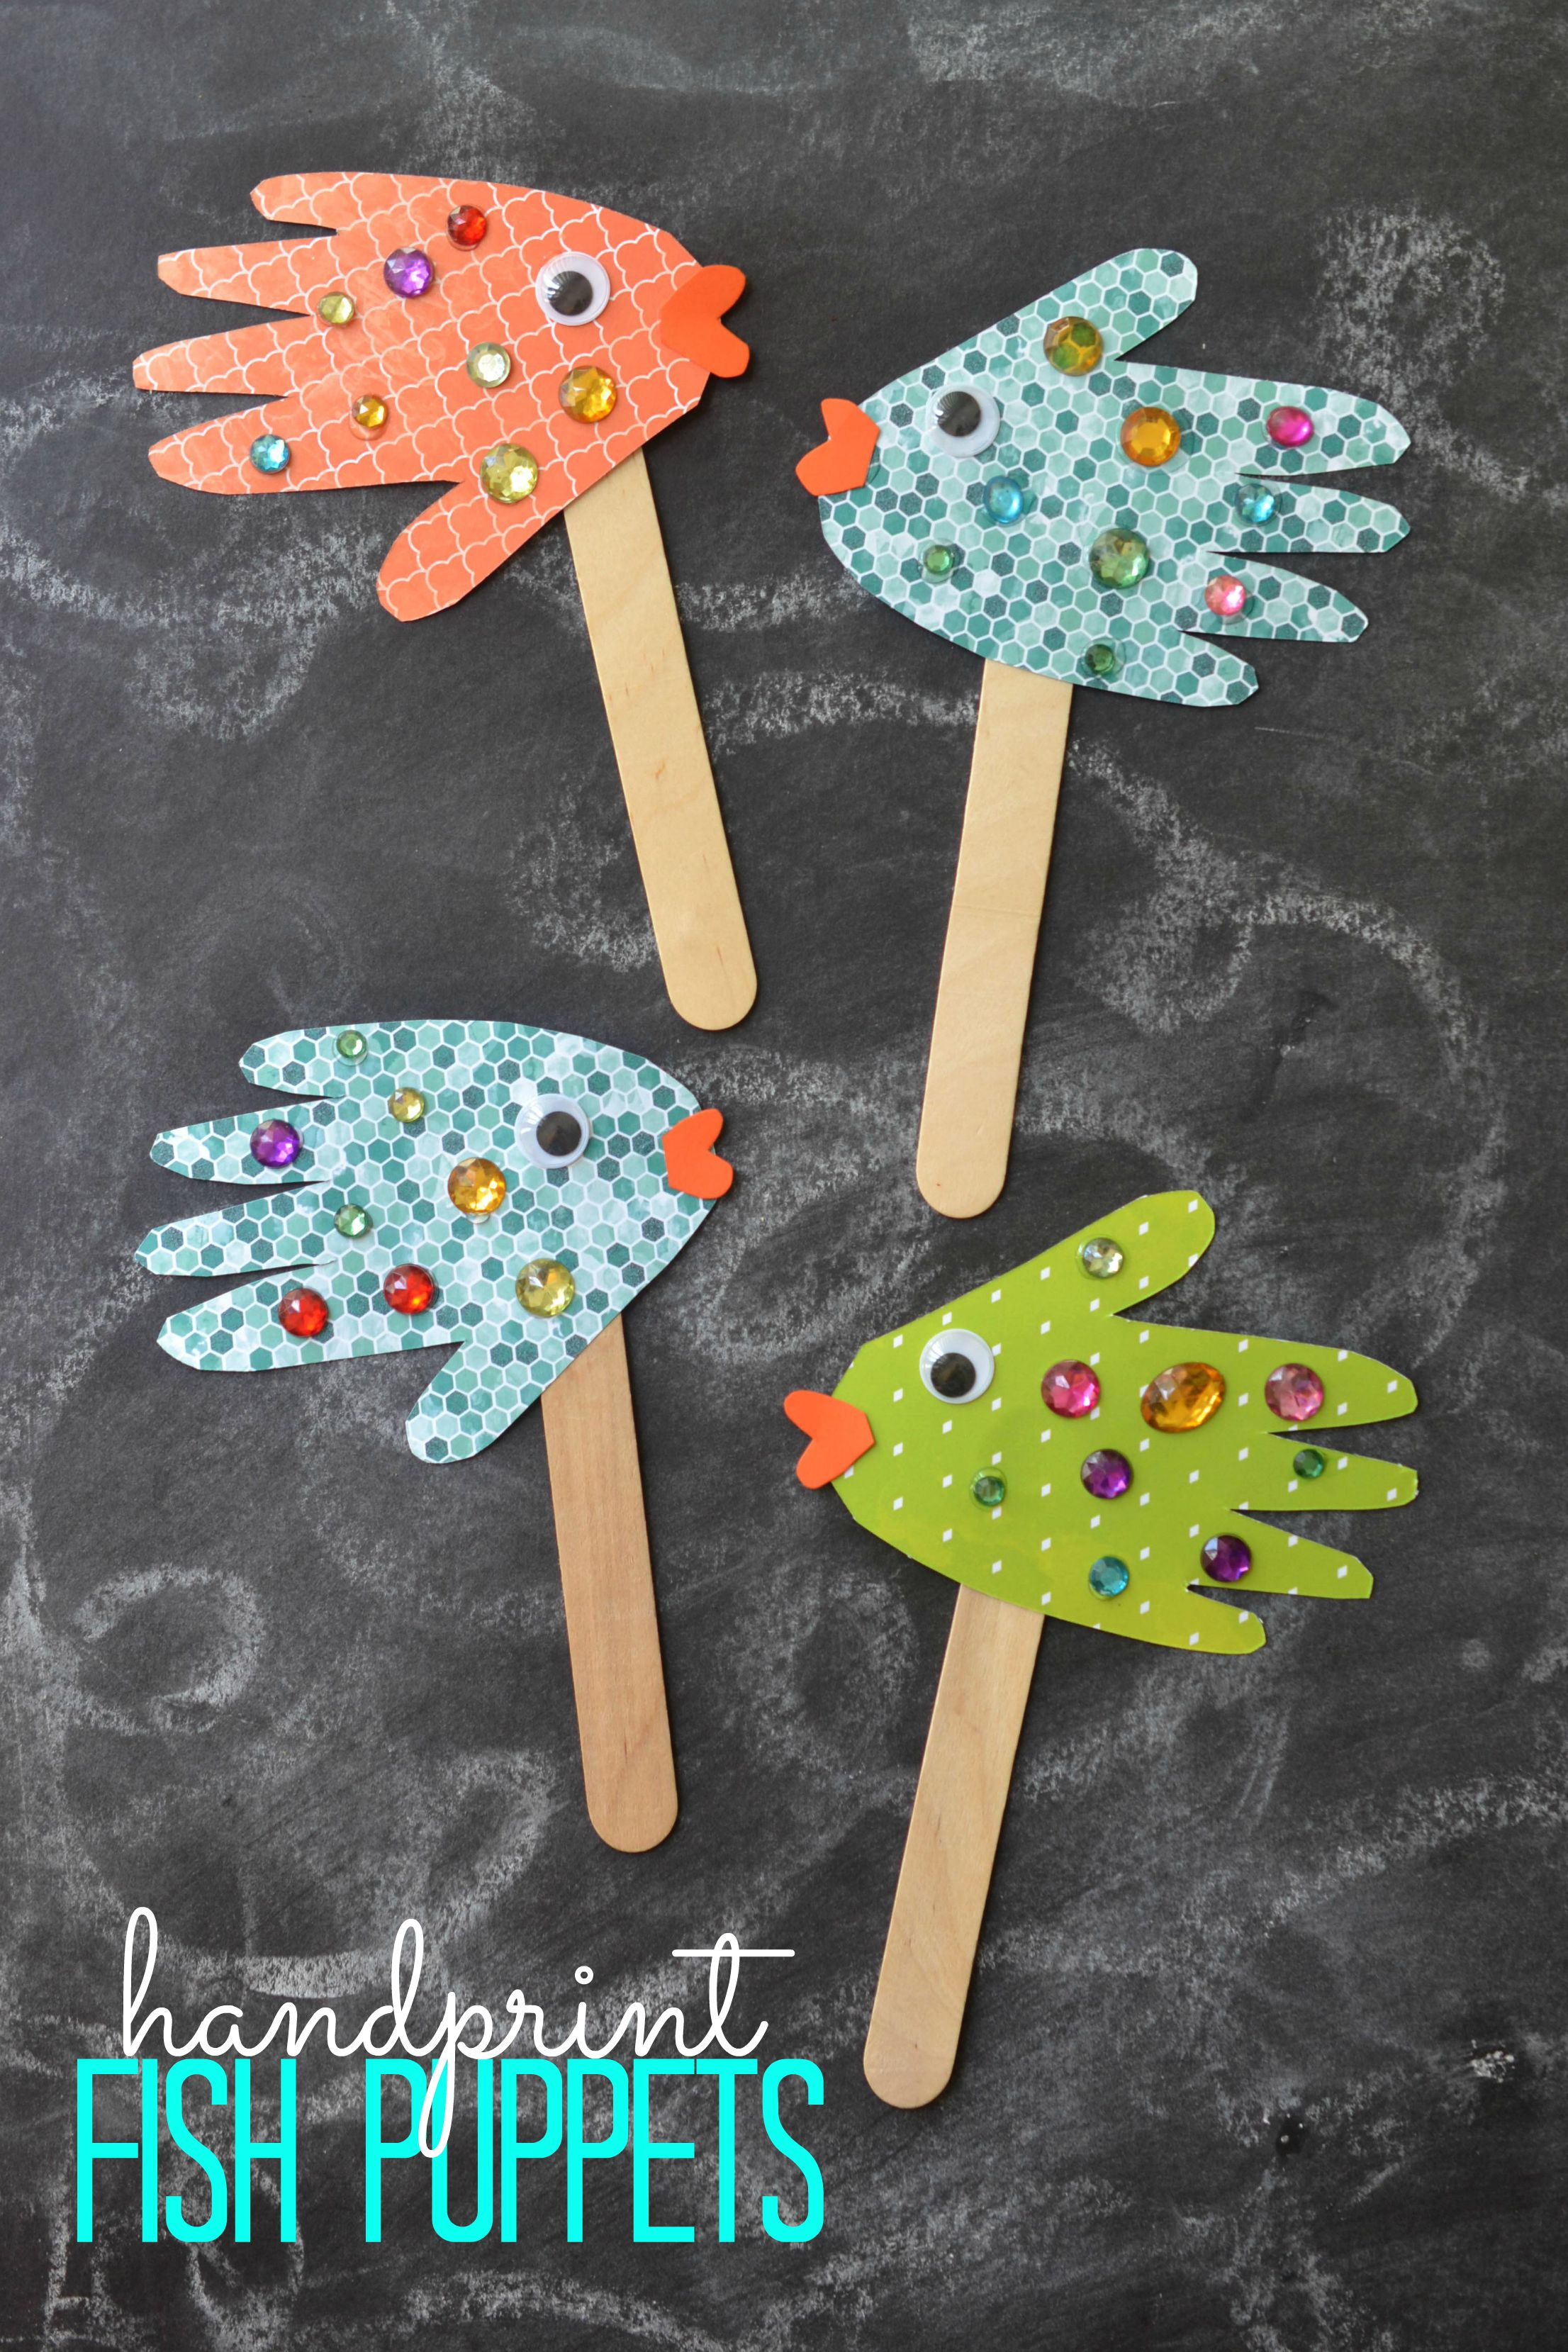 Surprising Vbs Craft Ideas Submerged Under The Sea Theme Southern Made Largest Home Design Picture Inspirations Pitcheantrous